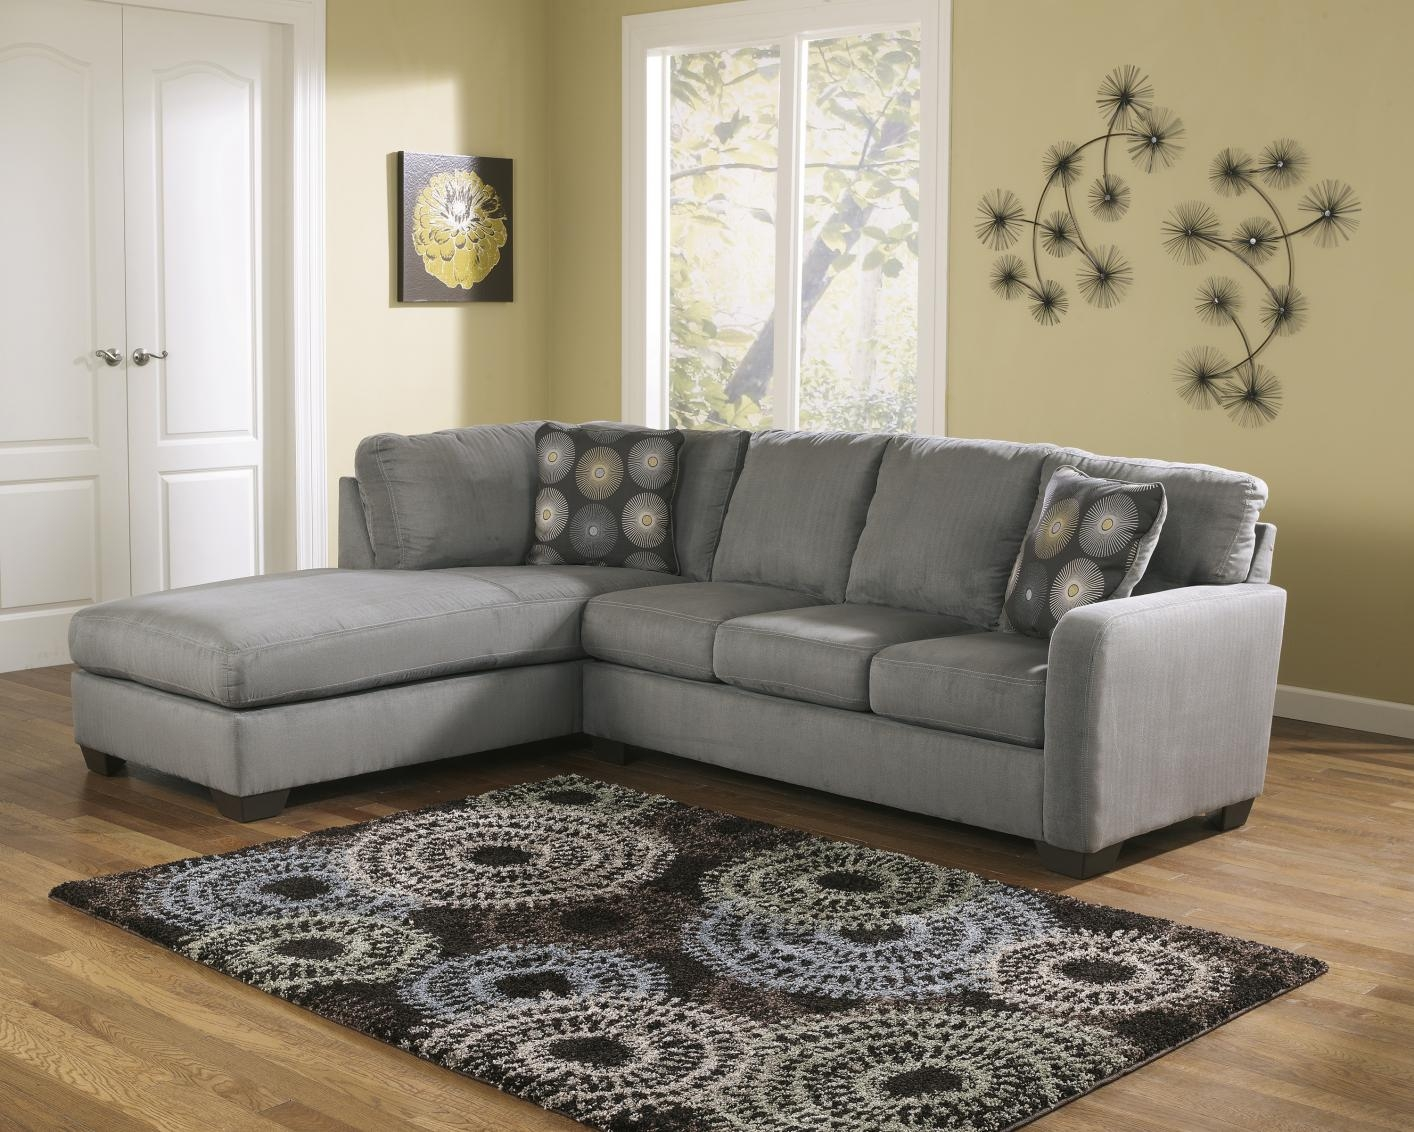 Signature Design Ashley 7020067 7020016 Grey Fabric Sectional With Fabric Sectional Sofa (Image 15 of 15)